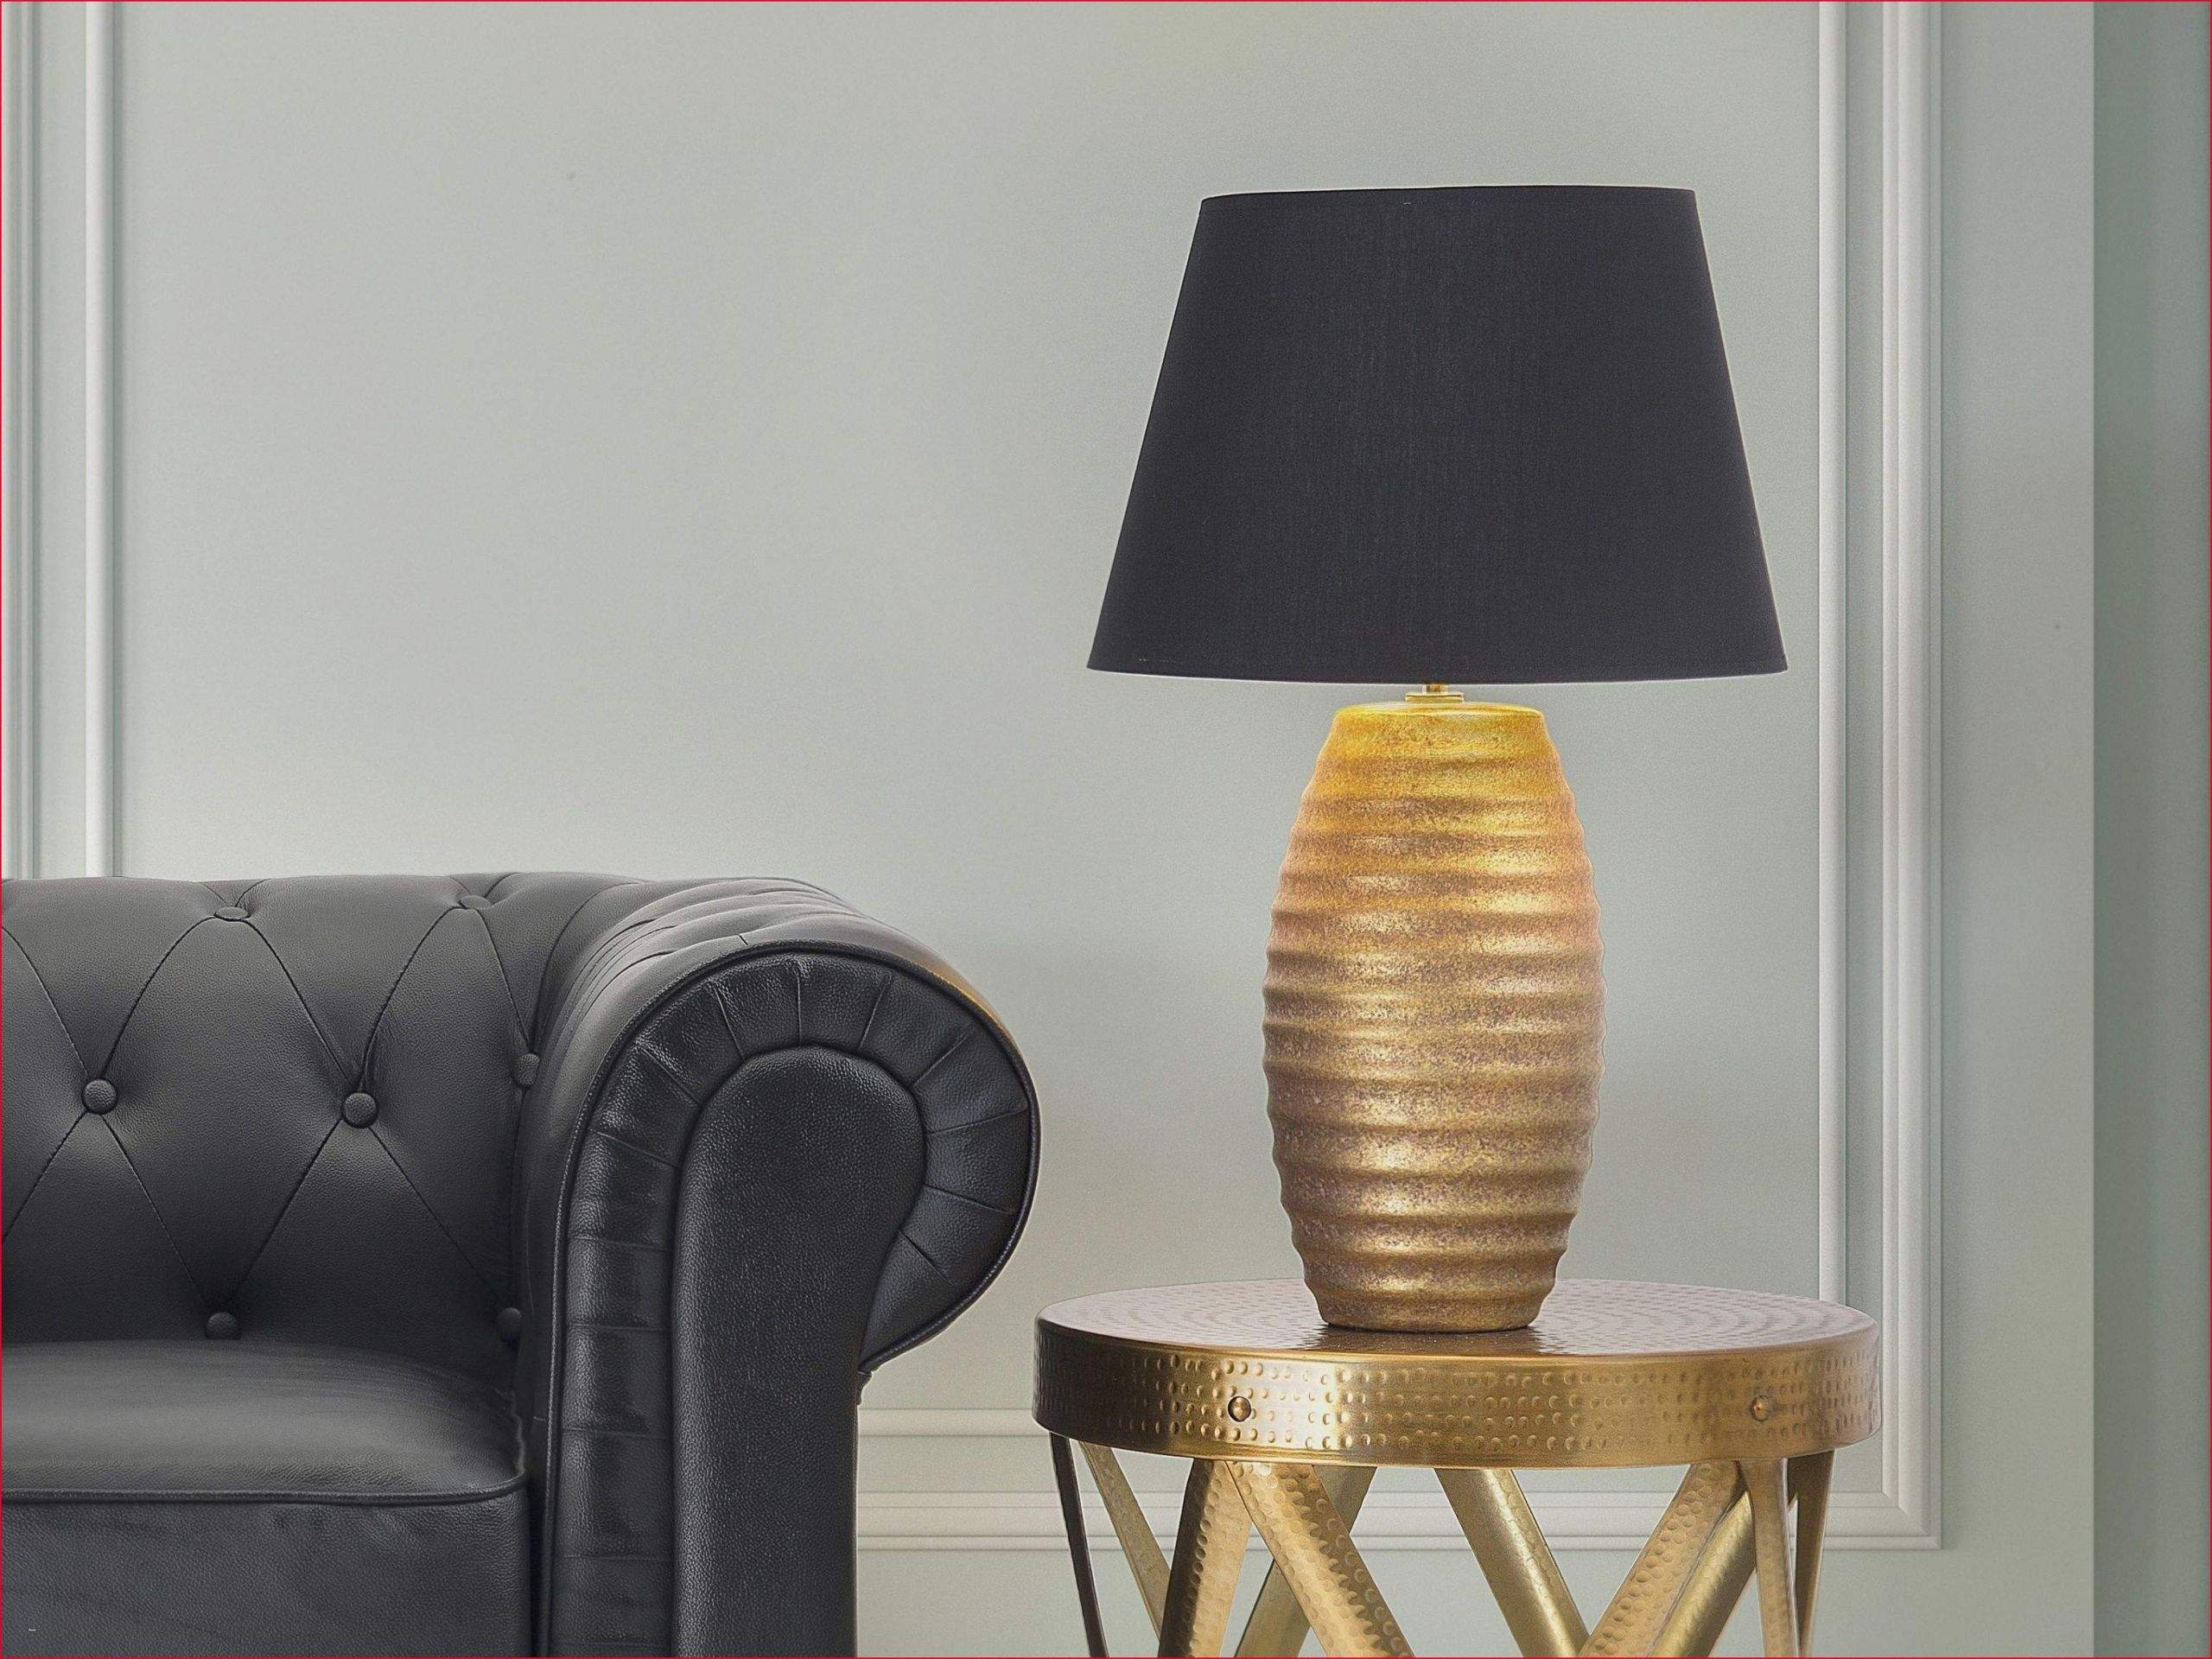 wohnzimmer lampe led elegant schon licht lampe sammlung von lampe idee lampe ideen of wohnzimmer lampe led scaled